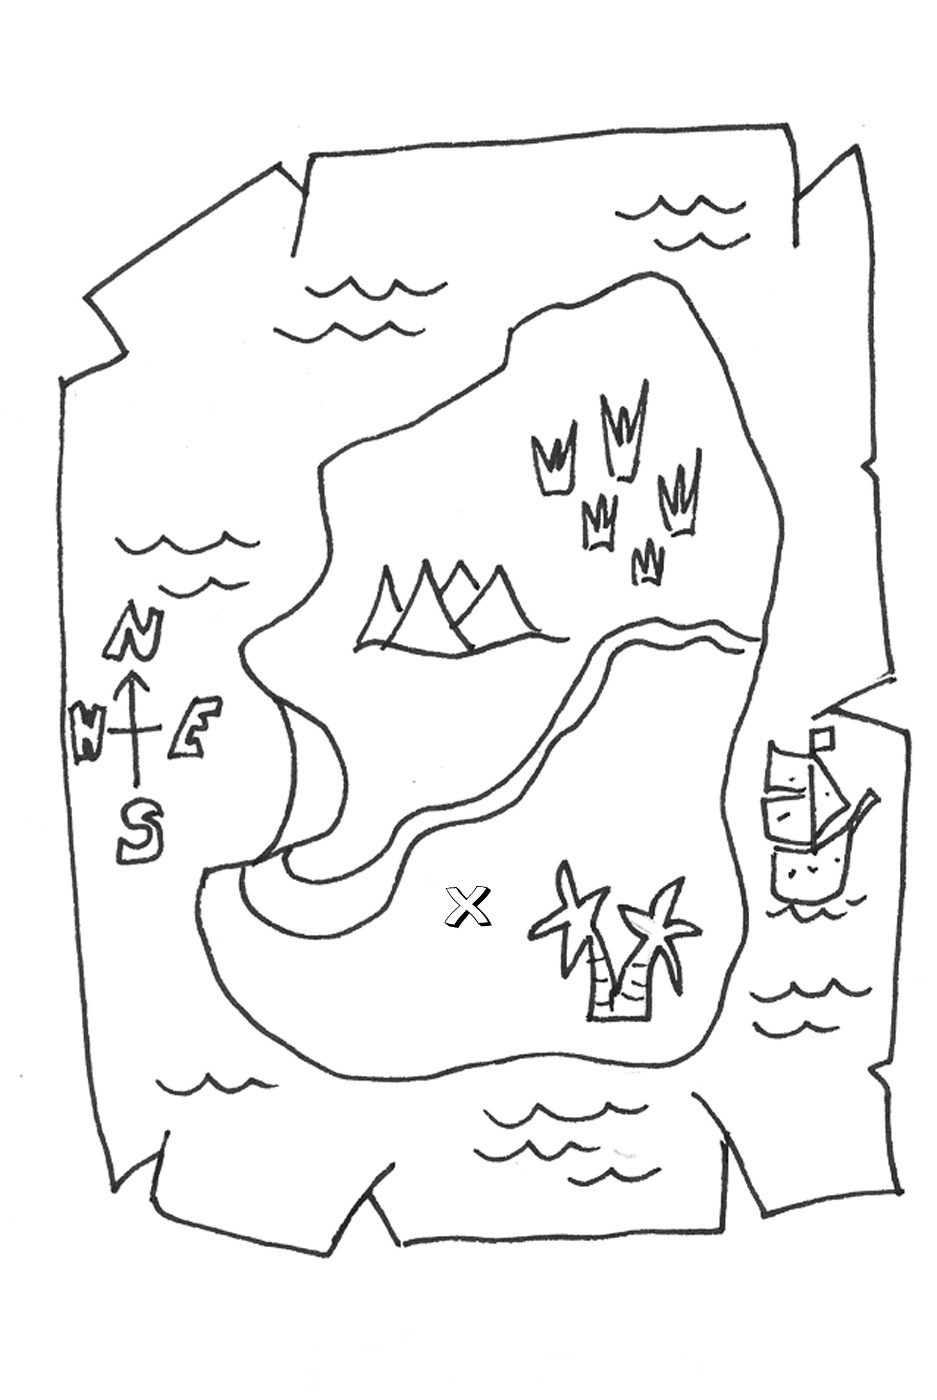 My nephew loves coloring pages dealing with pirates, maps